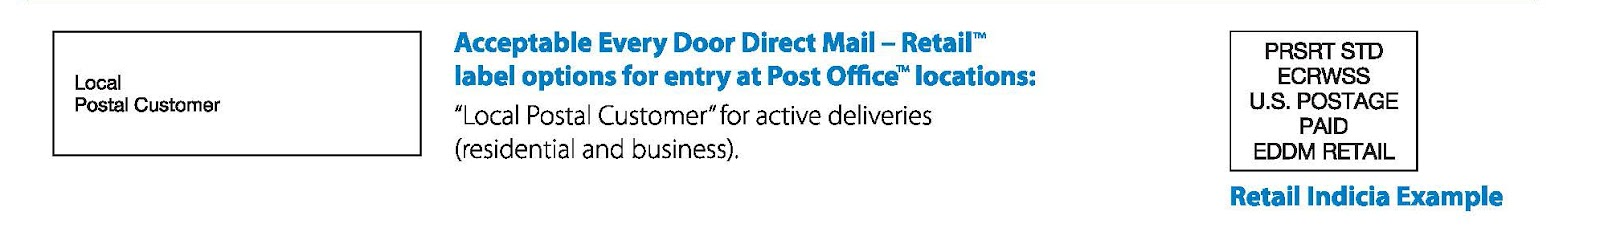 usps every door direct mail template - eddm indicia gallery